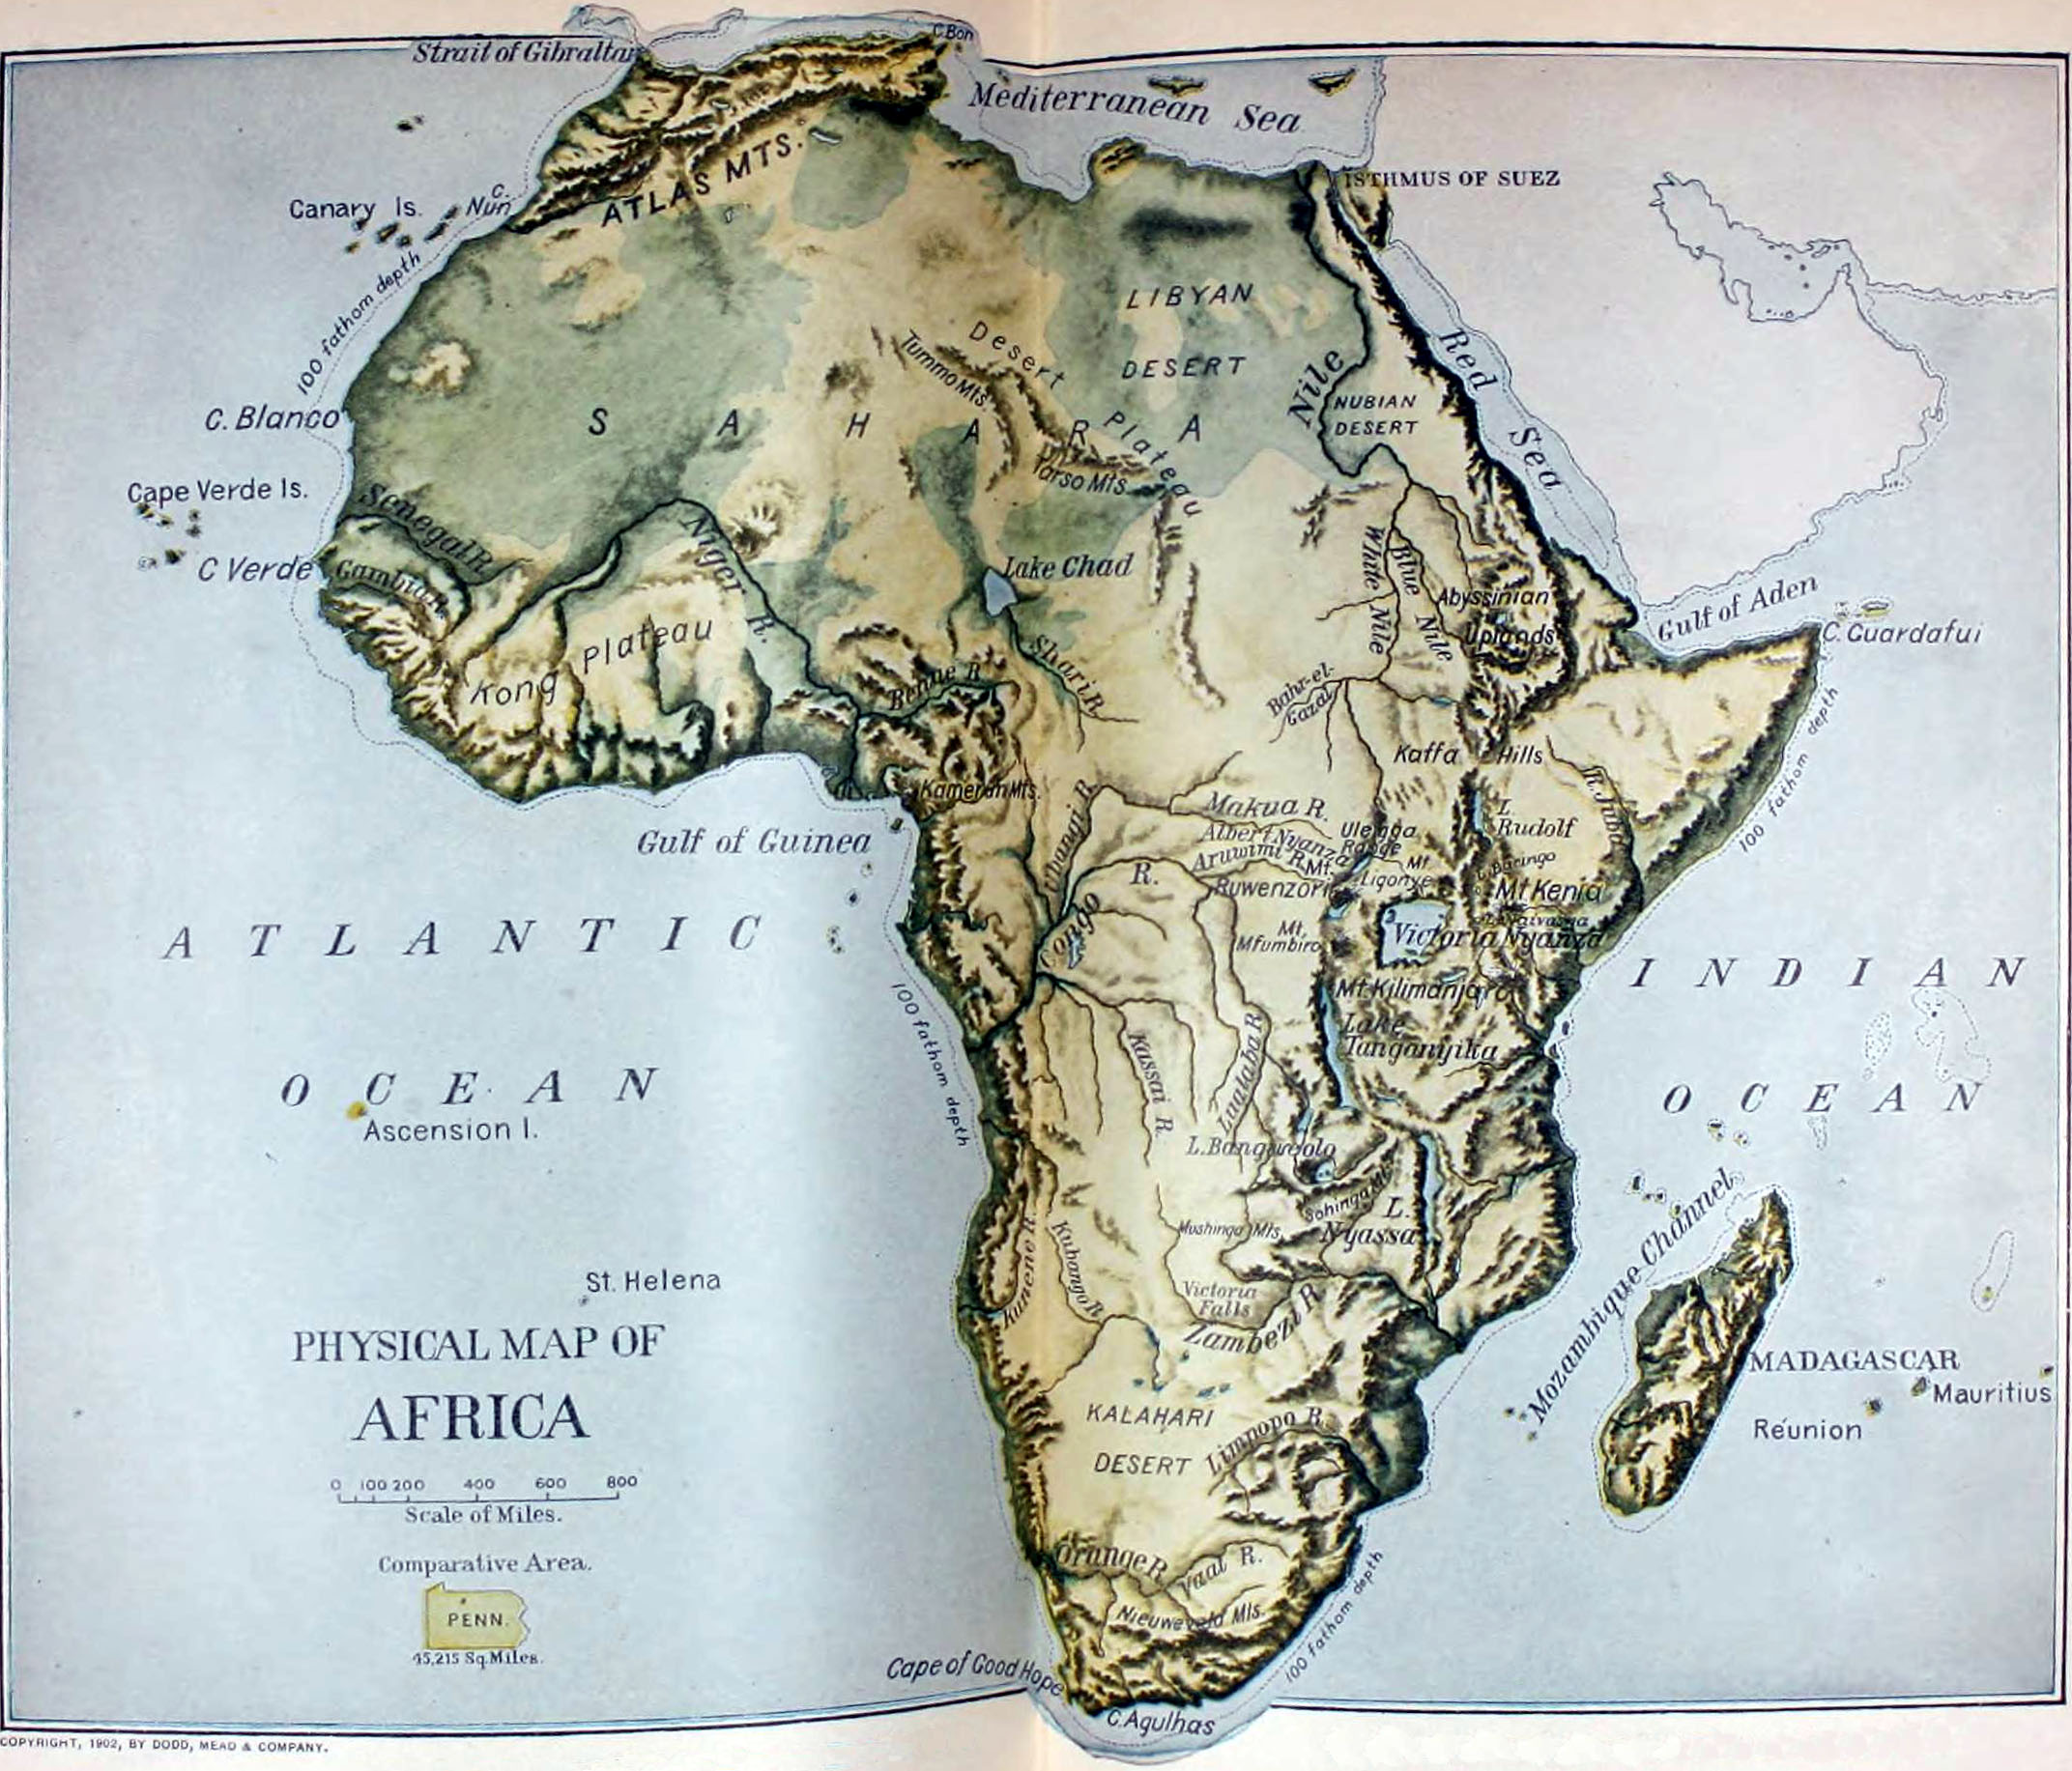 FileNIE Africa Physical Mapjpg Wikimedia Commons - Map of africa physical